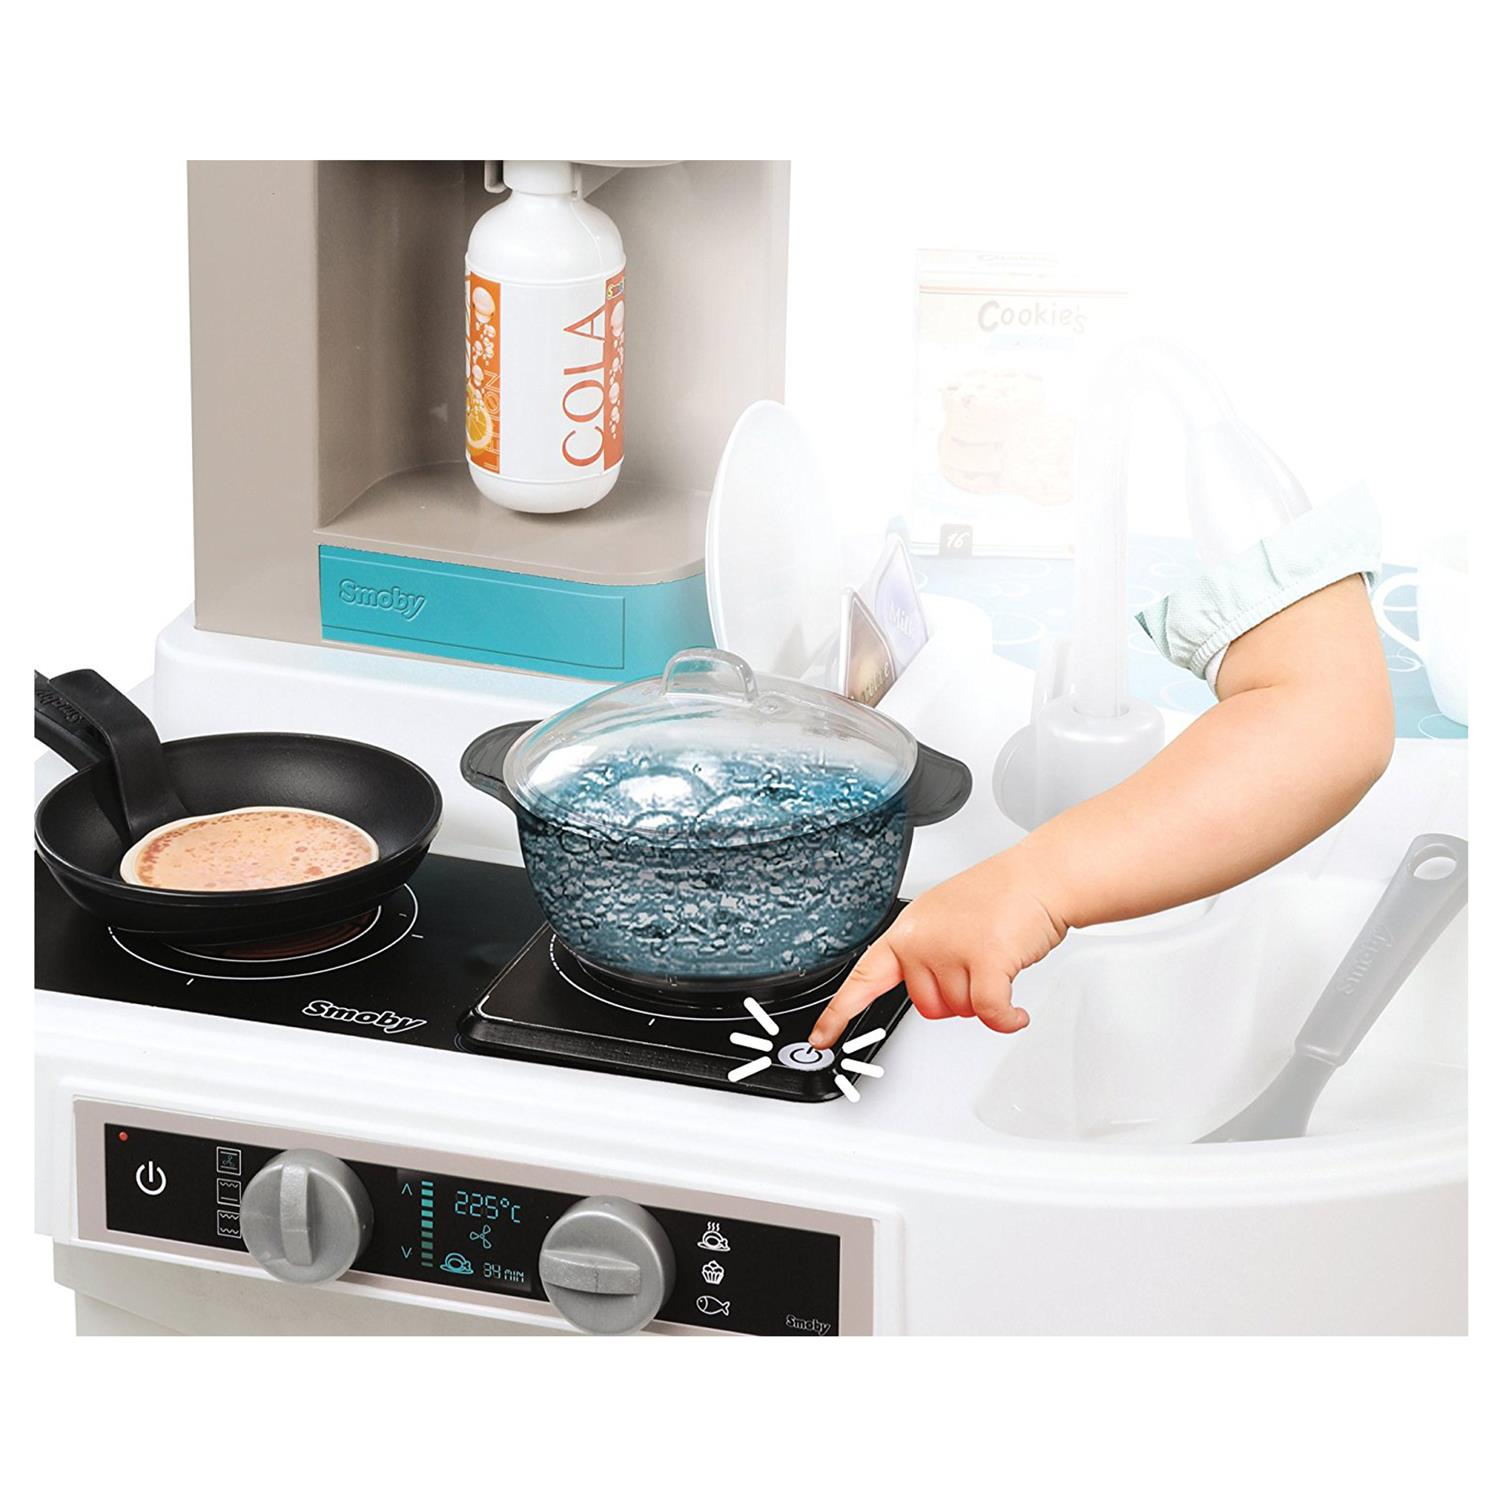 Tefal Studio Bubble Küche Smoby 311023 Tefal Studio Bubble Küche